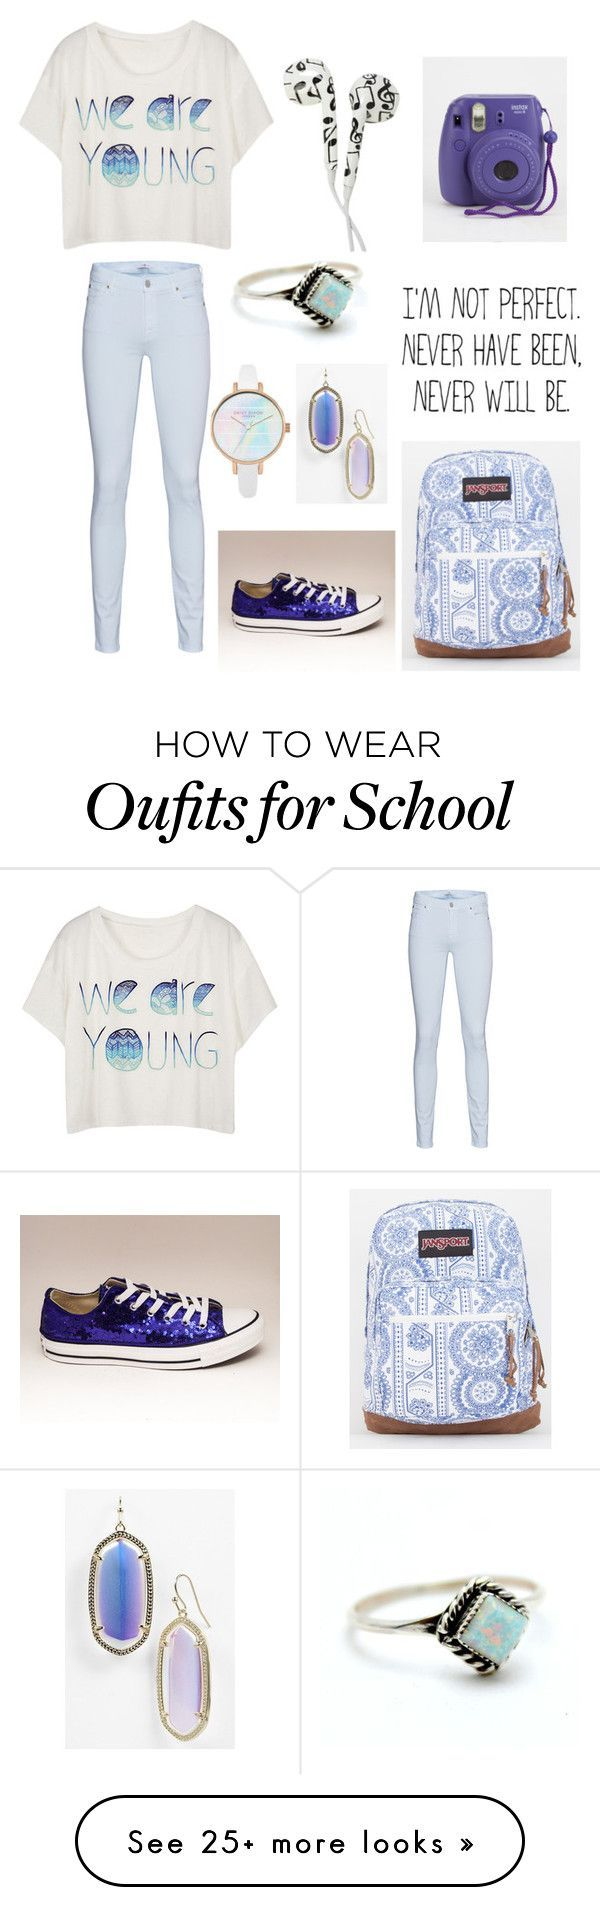 Hot new styles windowshoponline nice clothes and school